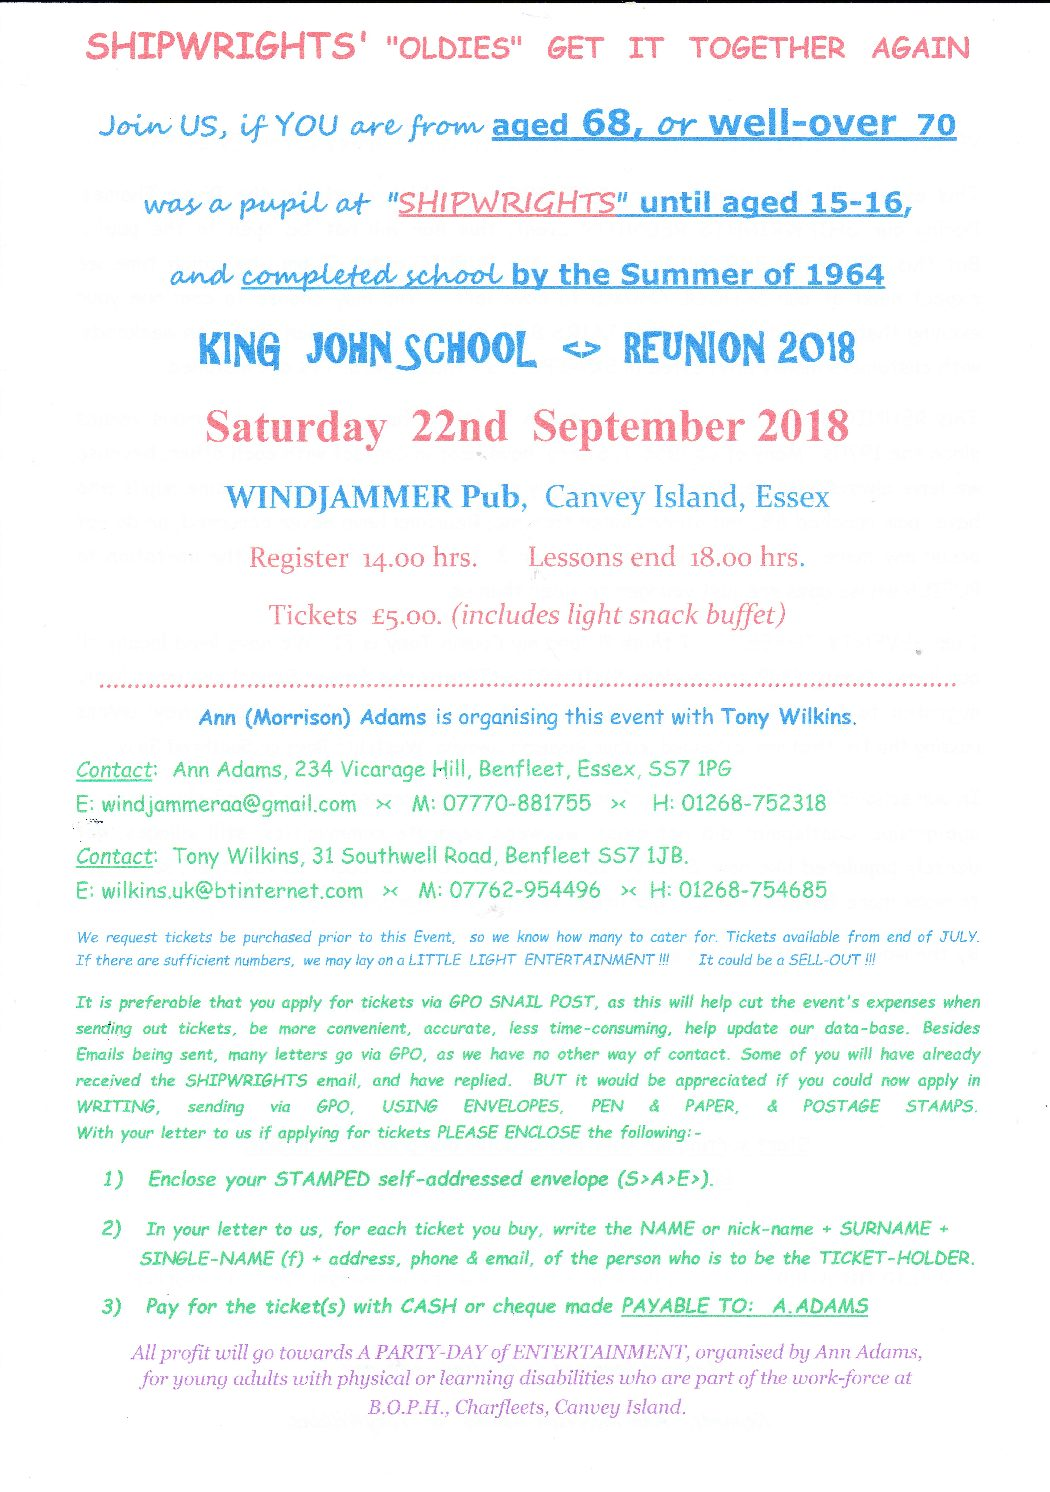 King John School Reunion 2018